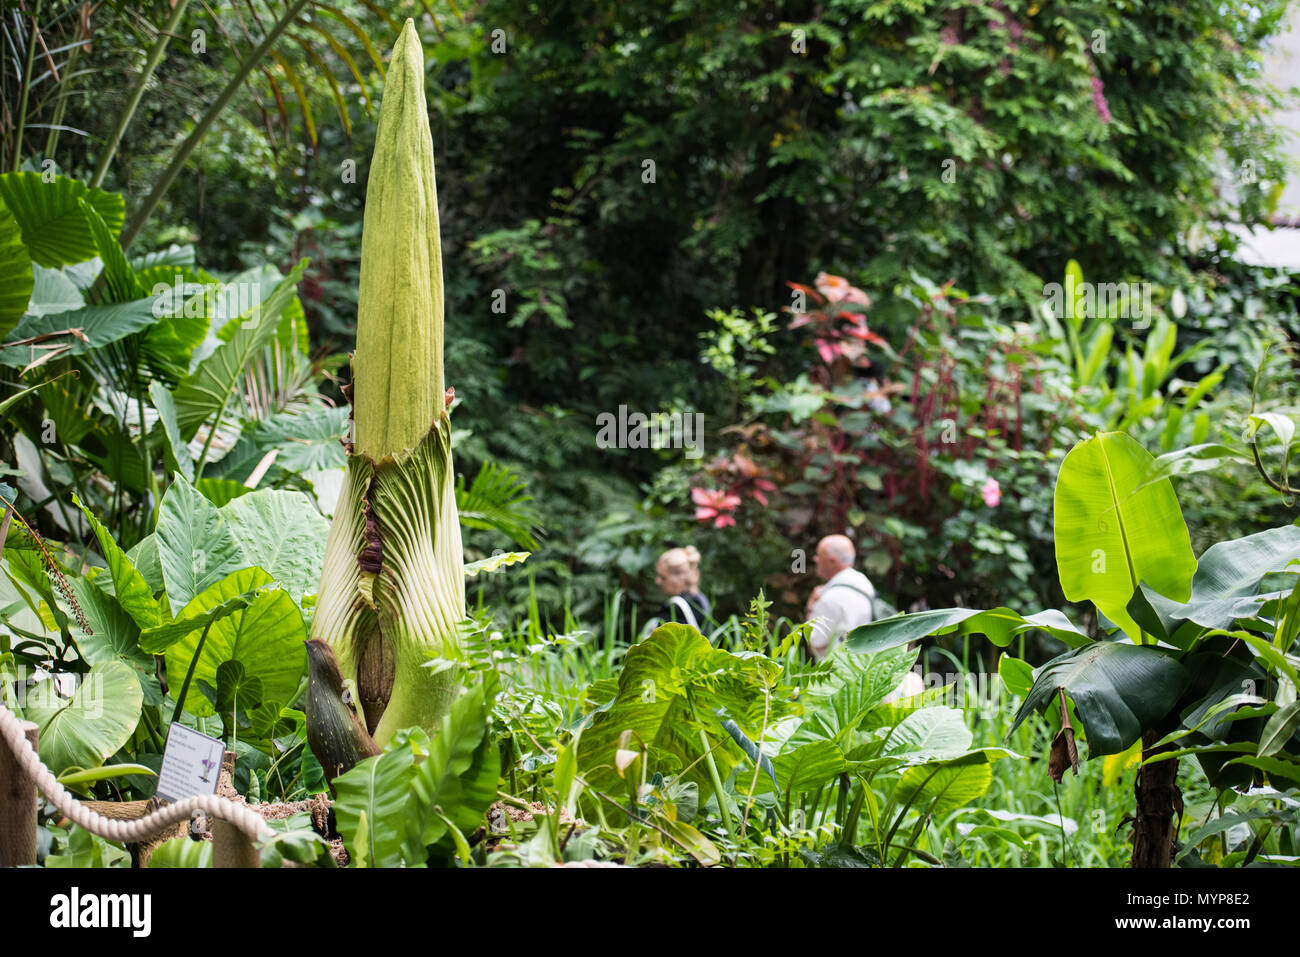 A Titan Arum at the Eden Project (Summer 2018, 7th June). - Stock Image